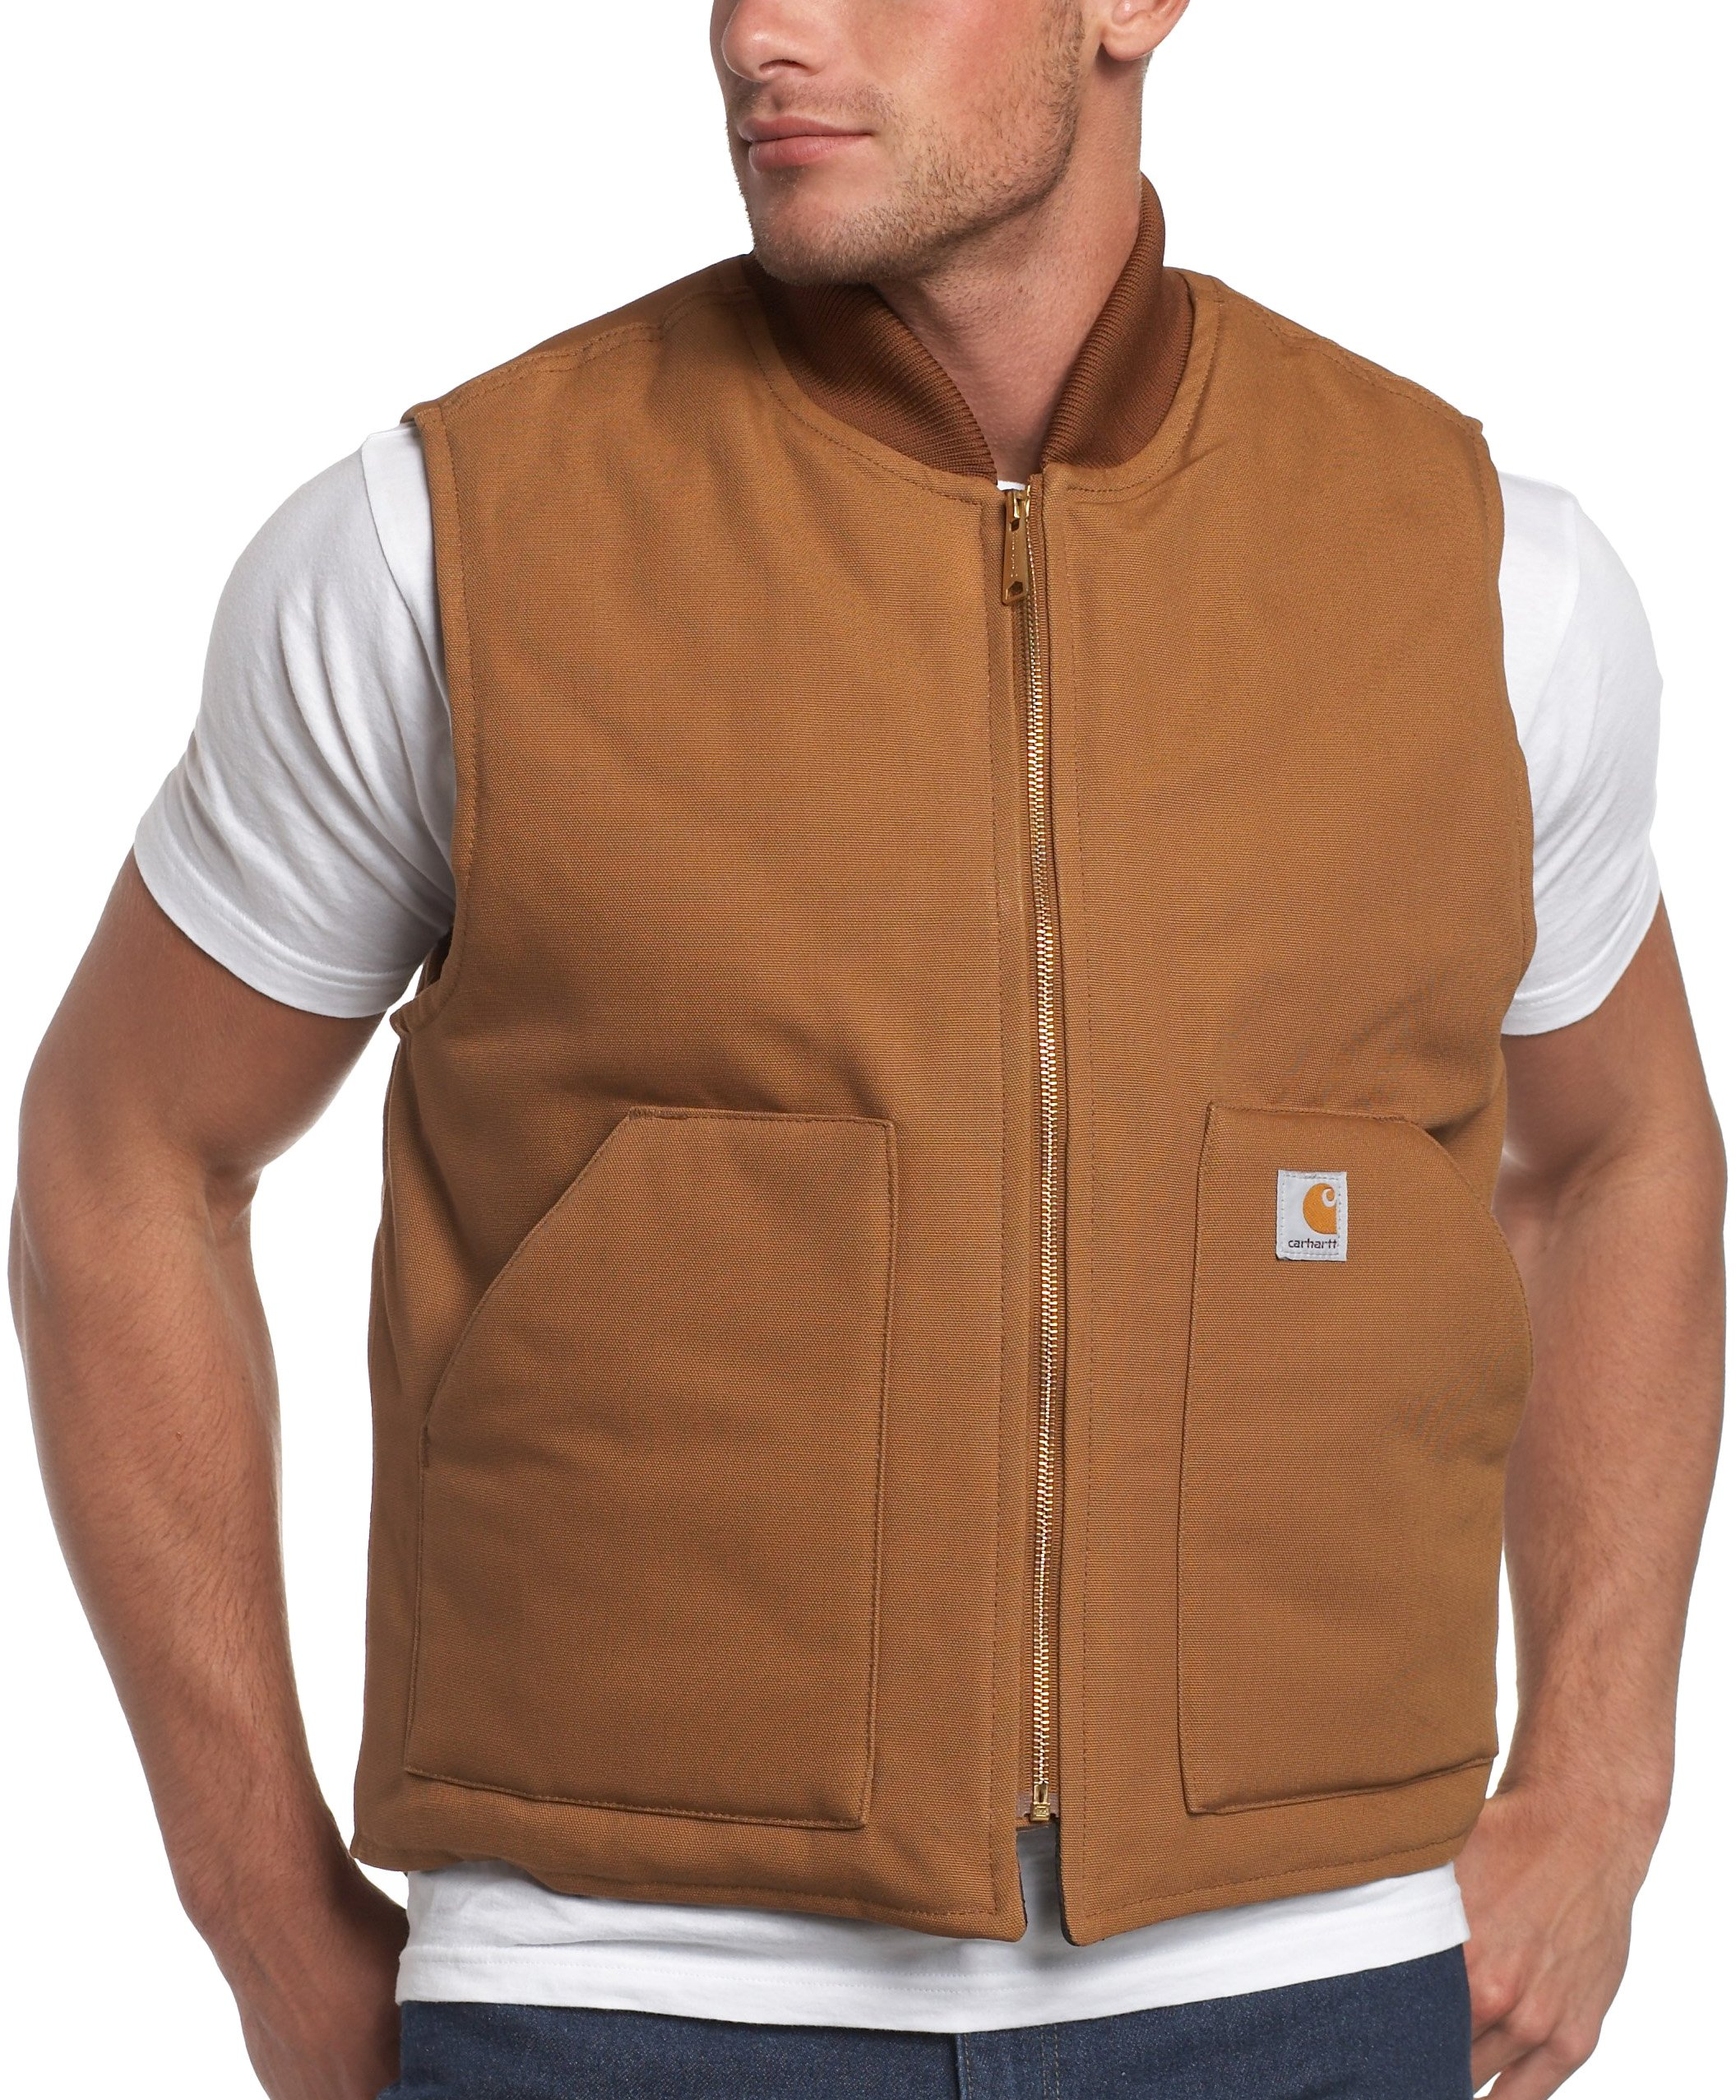 Carhartt Men's Arctic-Quilt Lined Duck Vest (Regular and Big & Tall Sizes), Brown, Small by Carhartt